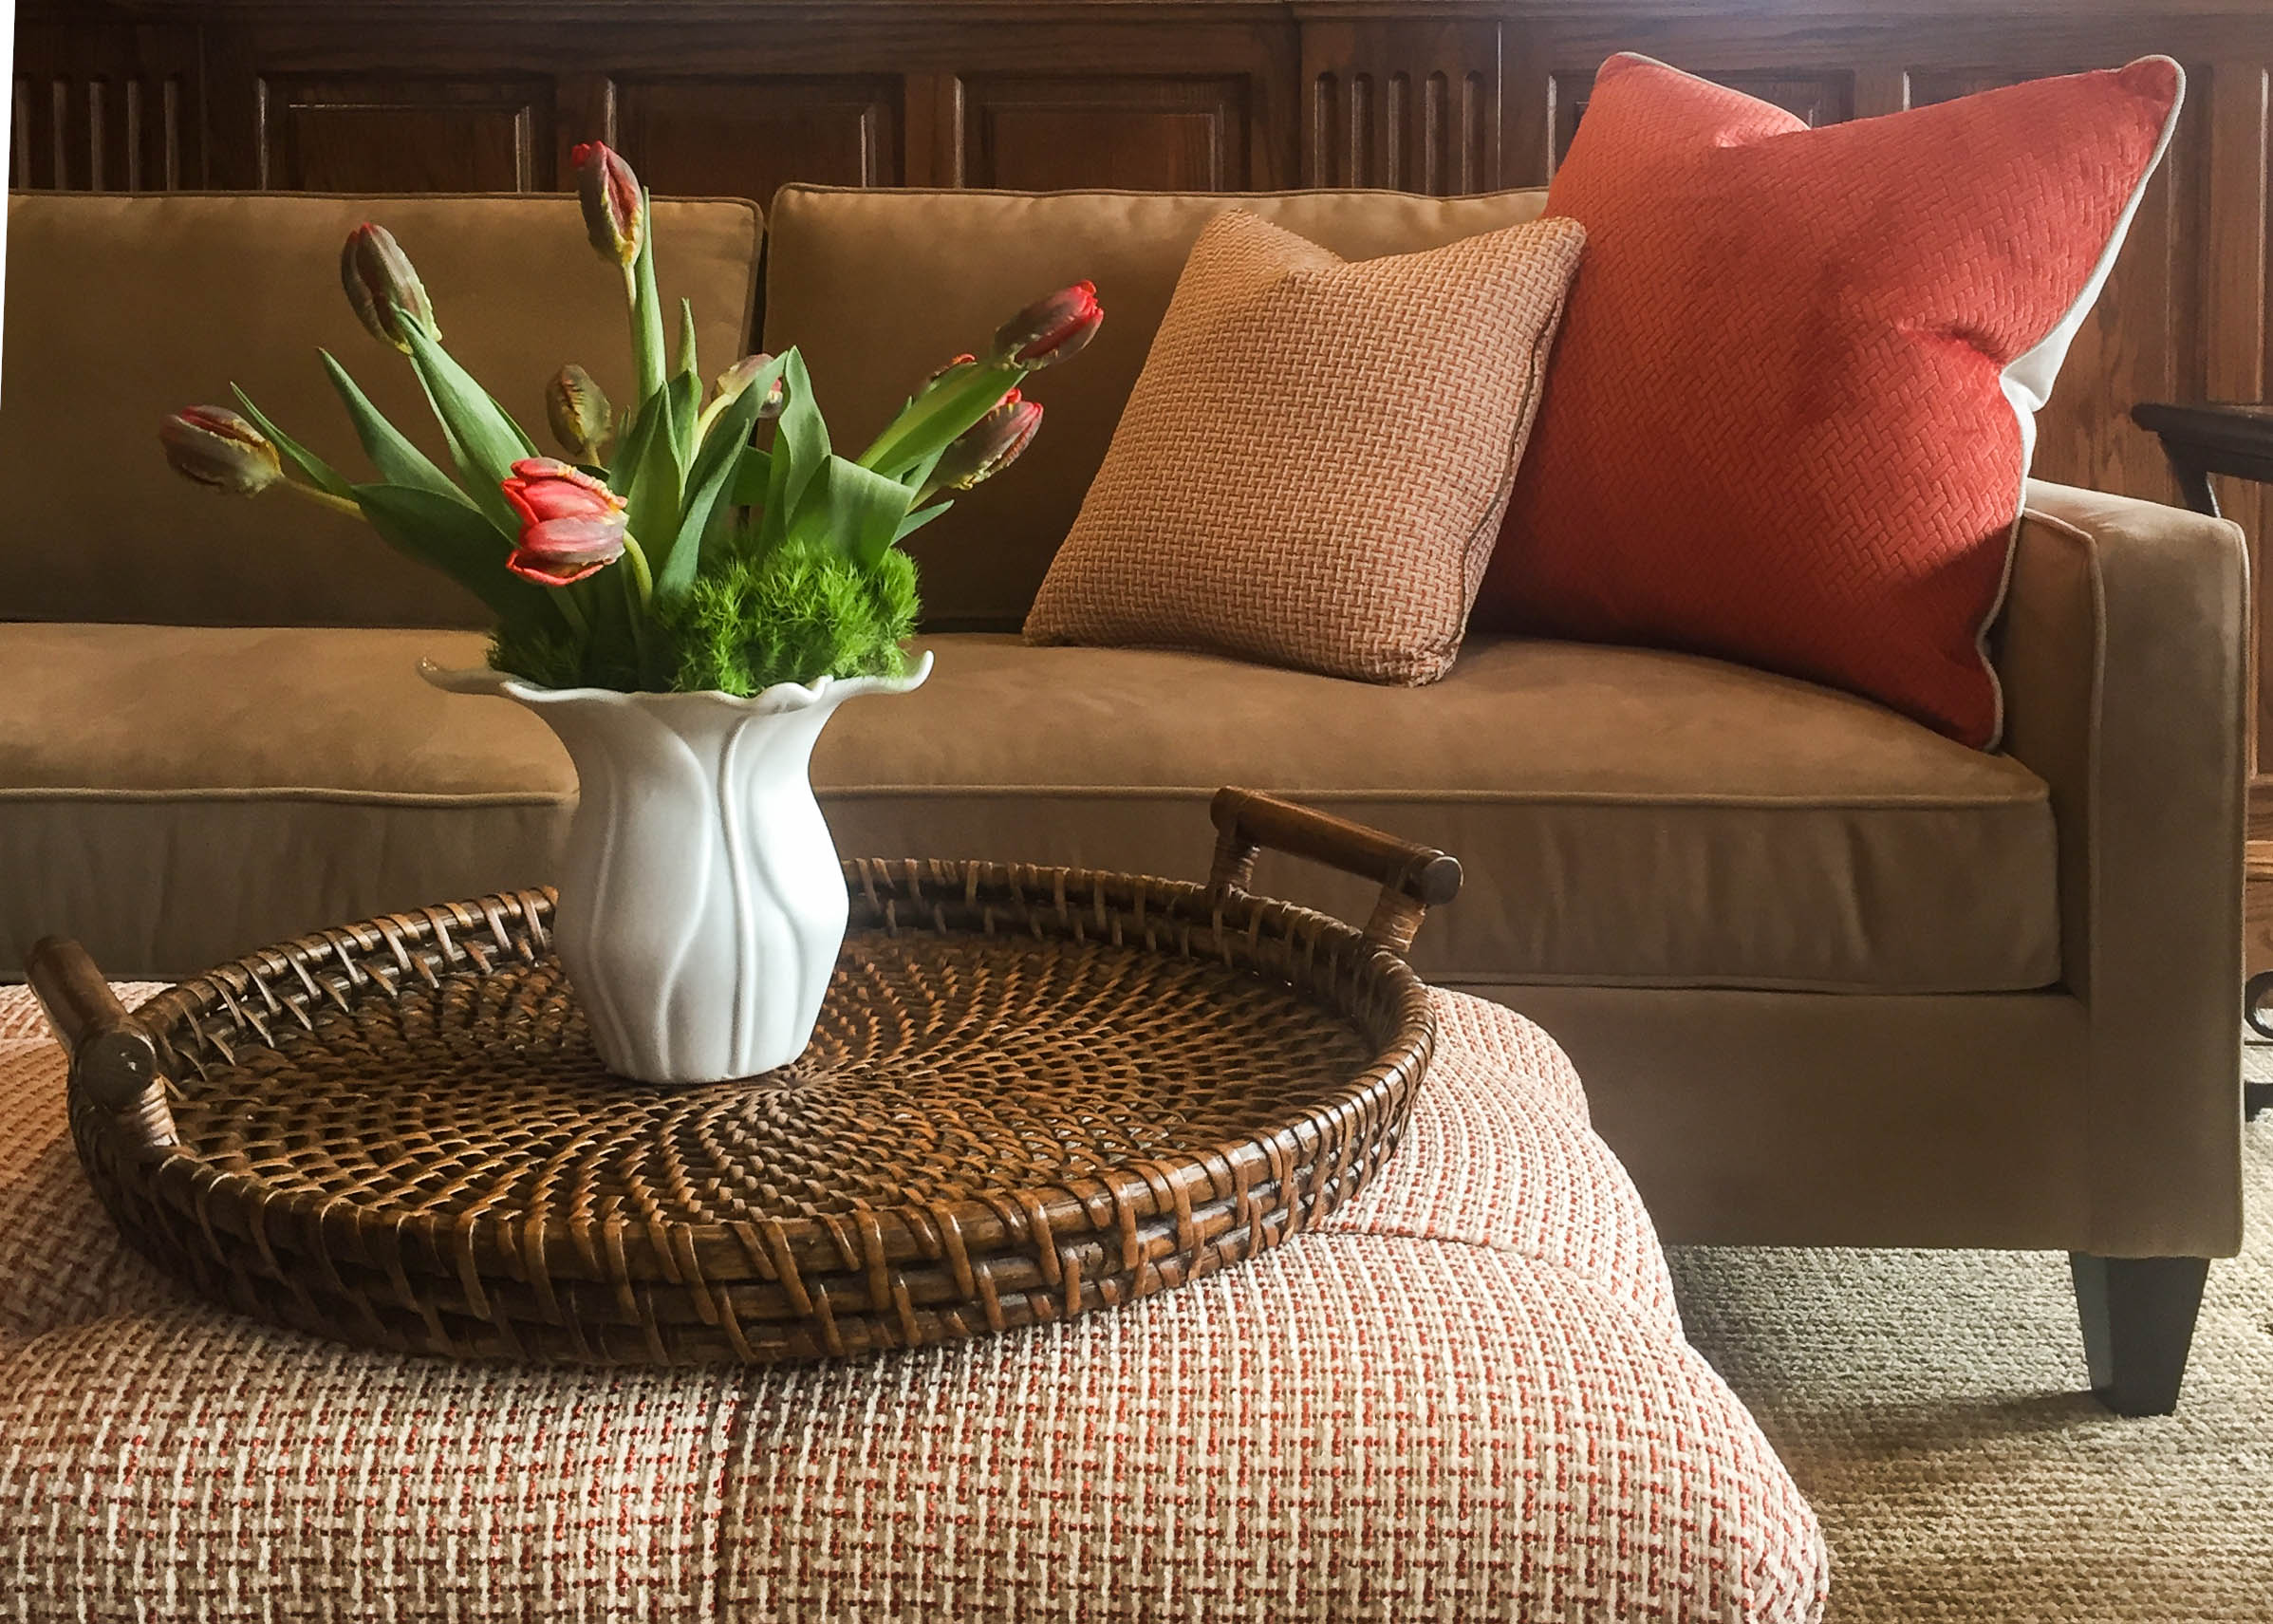 Showcasing North Carolina made upholstery here in our client's gathering room. We've put them together here in a posh pairing of hardworking velvet and a colorful woven.